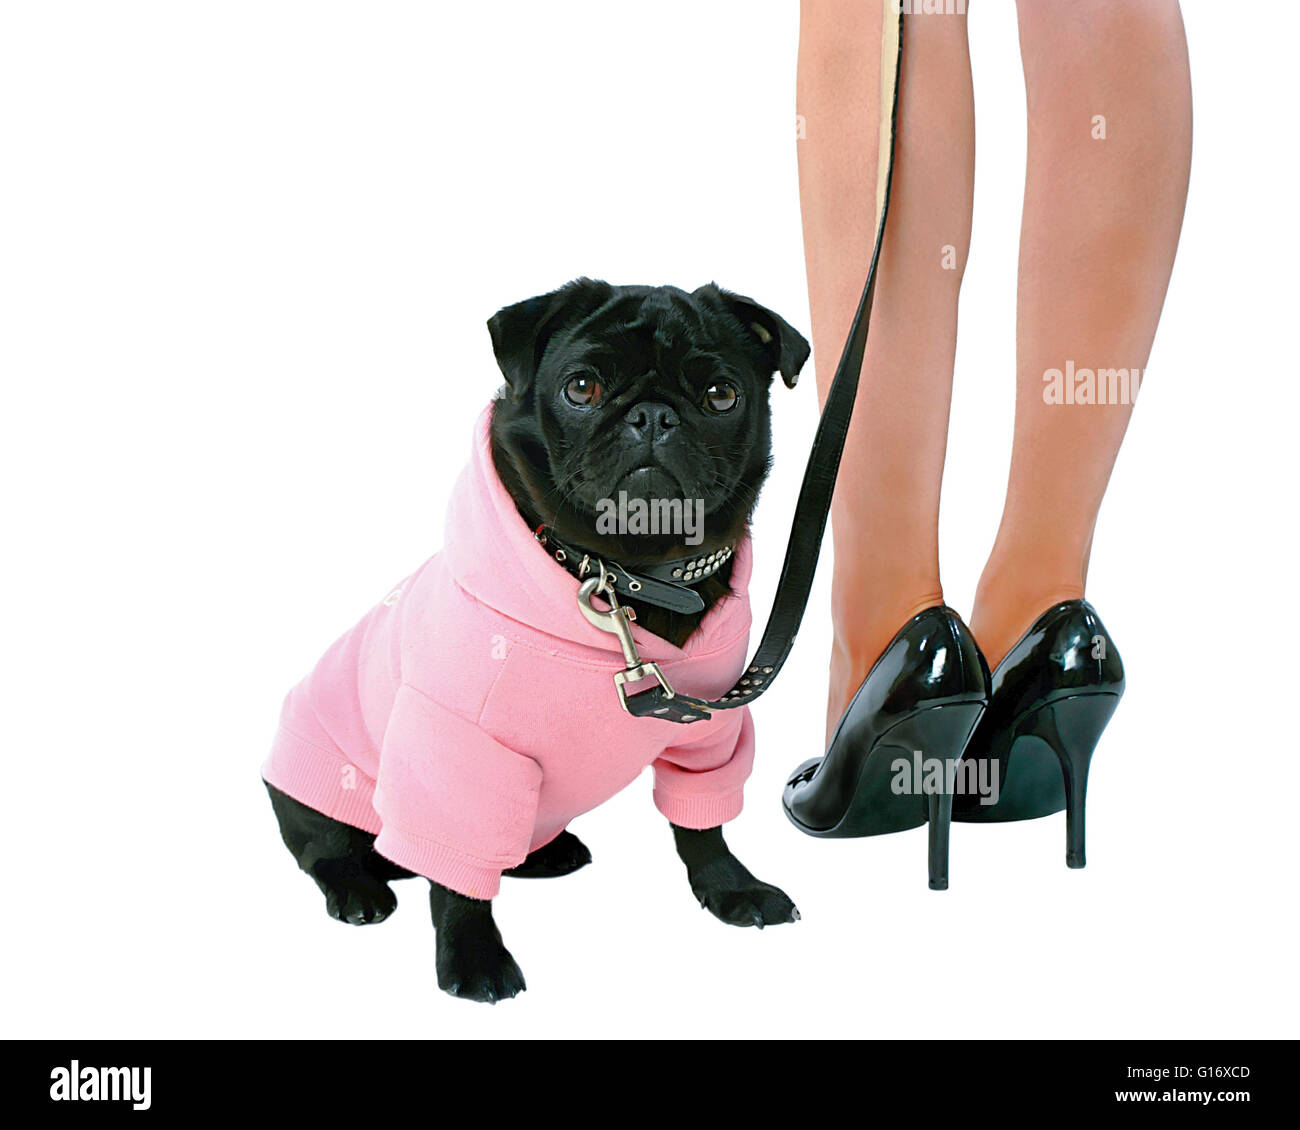 Small black pug puppy dog in pink clothes and woman in high heels isolated on white background  Model Release: Yes. - Stock Image